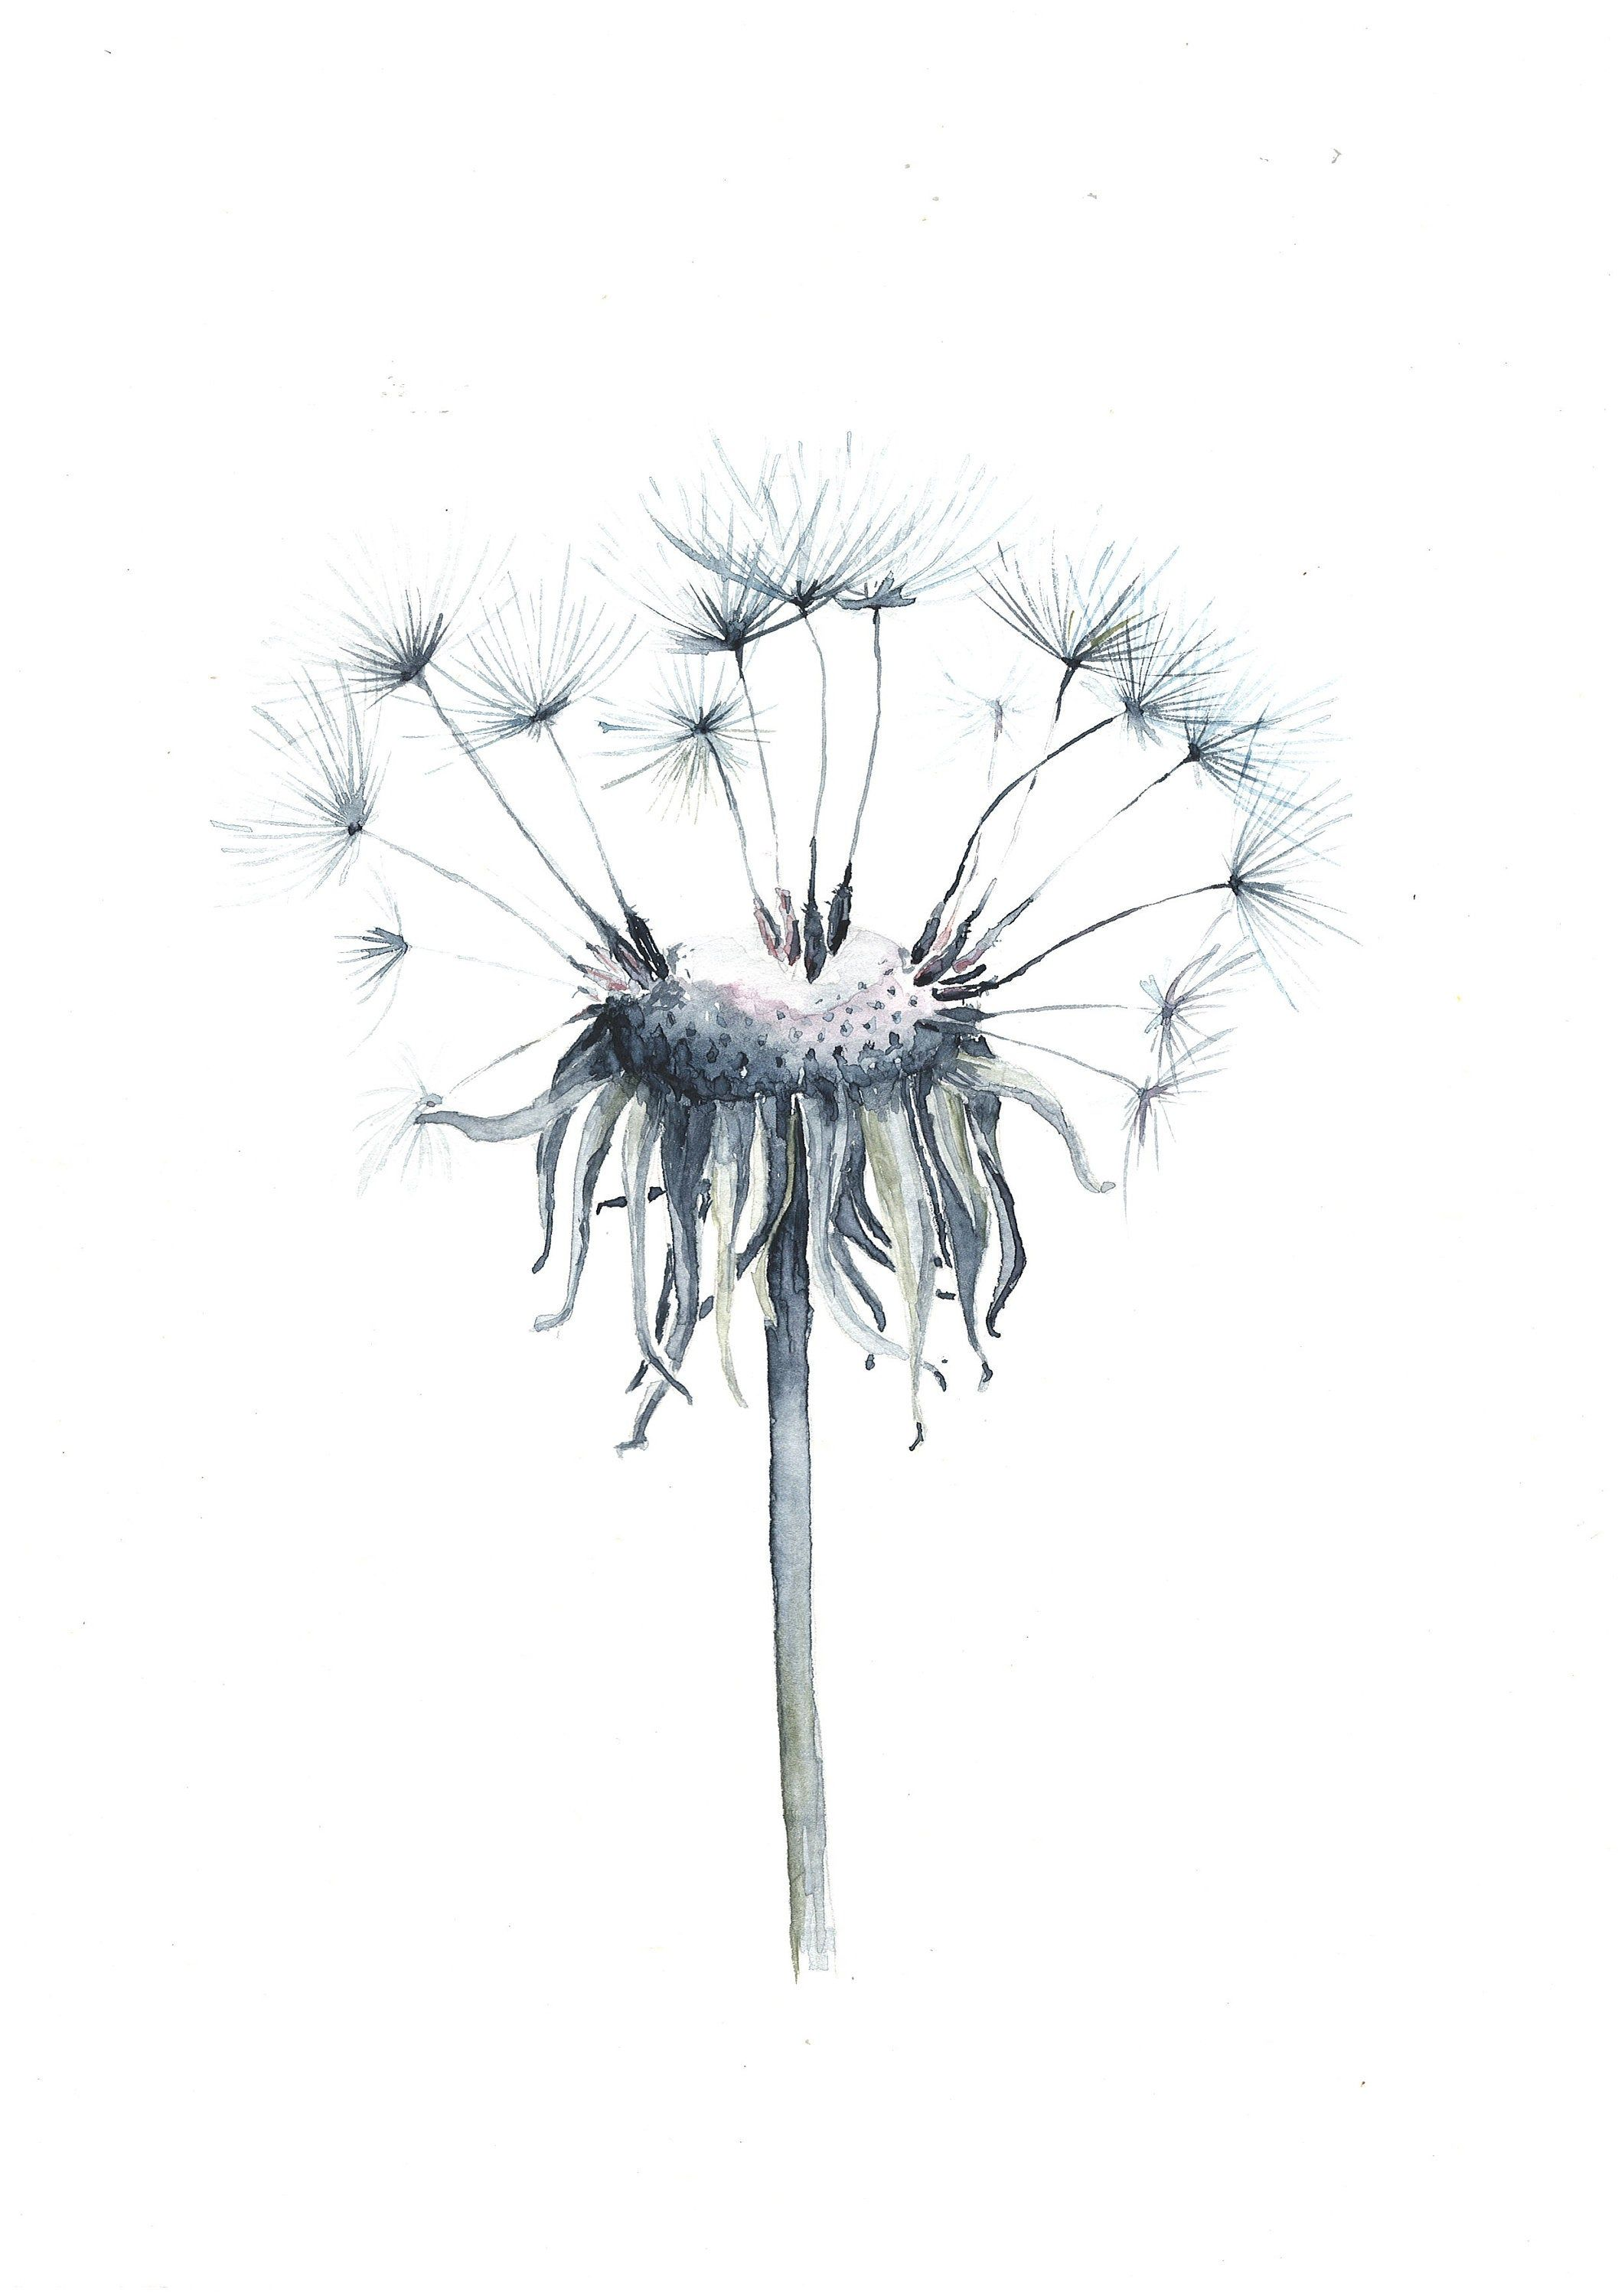 Blow Dandelion Original Botanical Watercolor Painting Etsy In 2020 Watercolor Painting Etsy Watercolor Paintings Dandelion Art